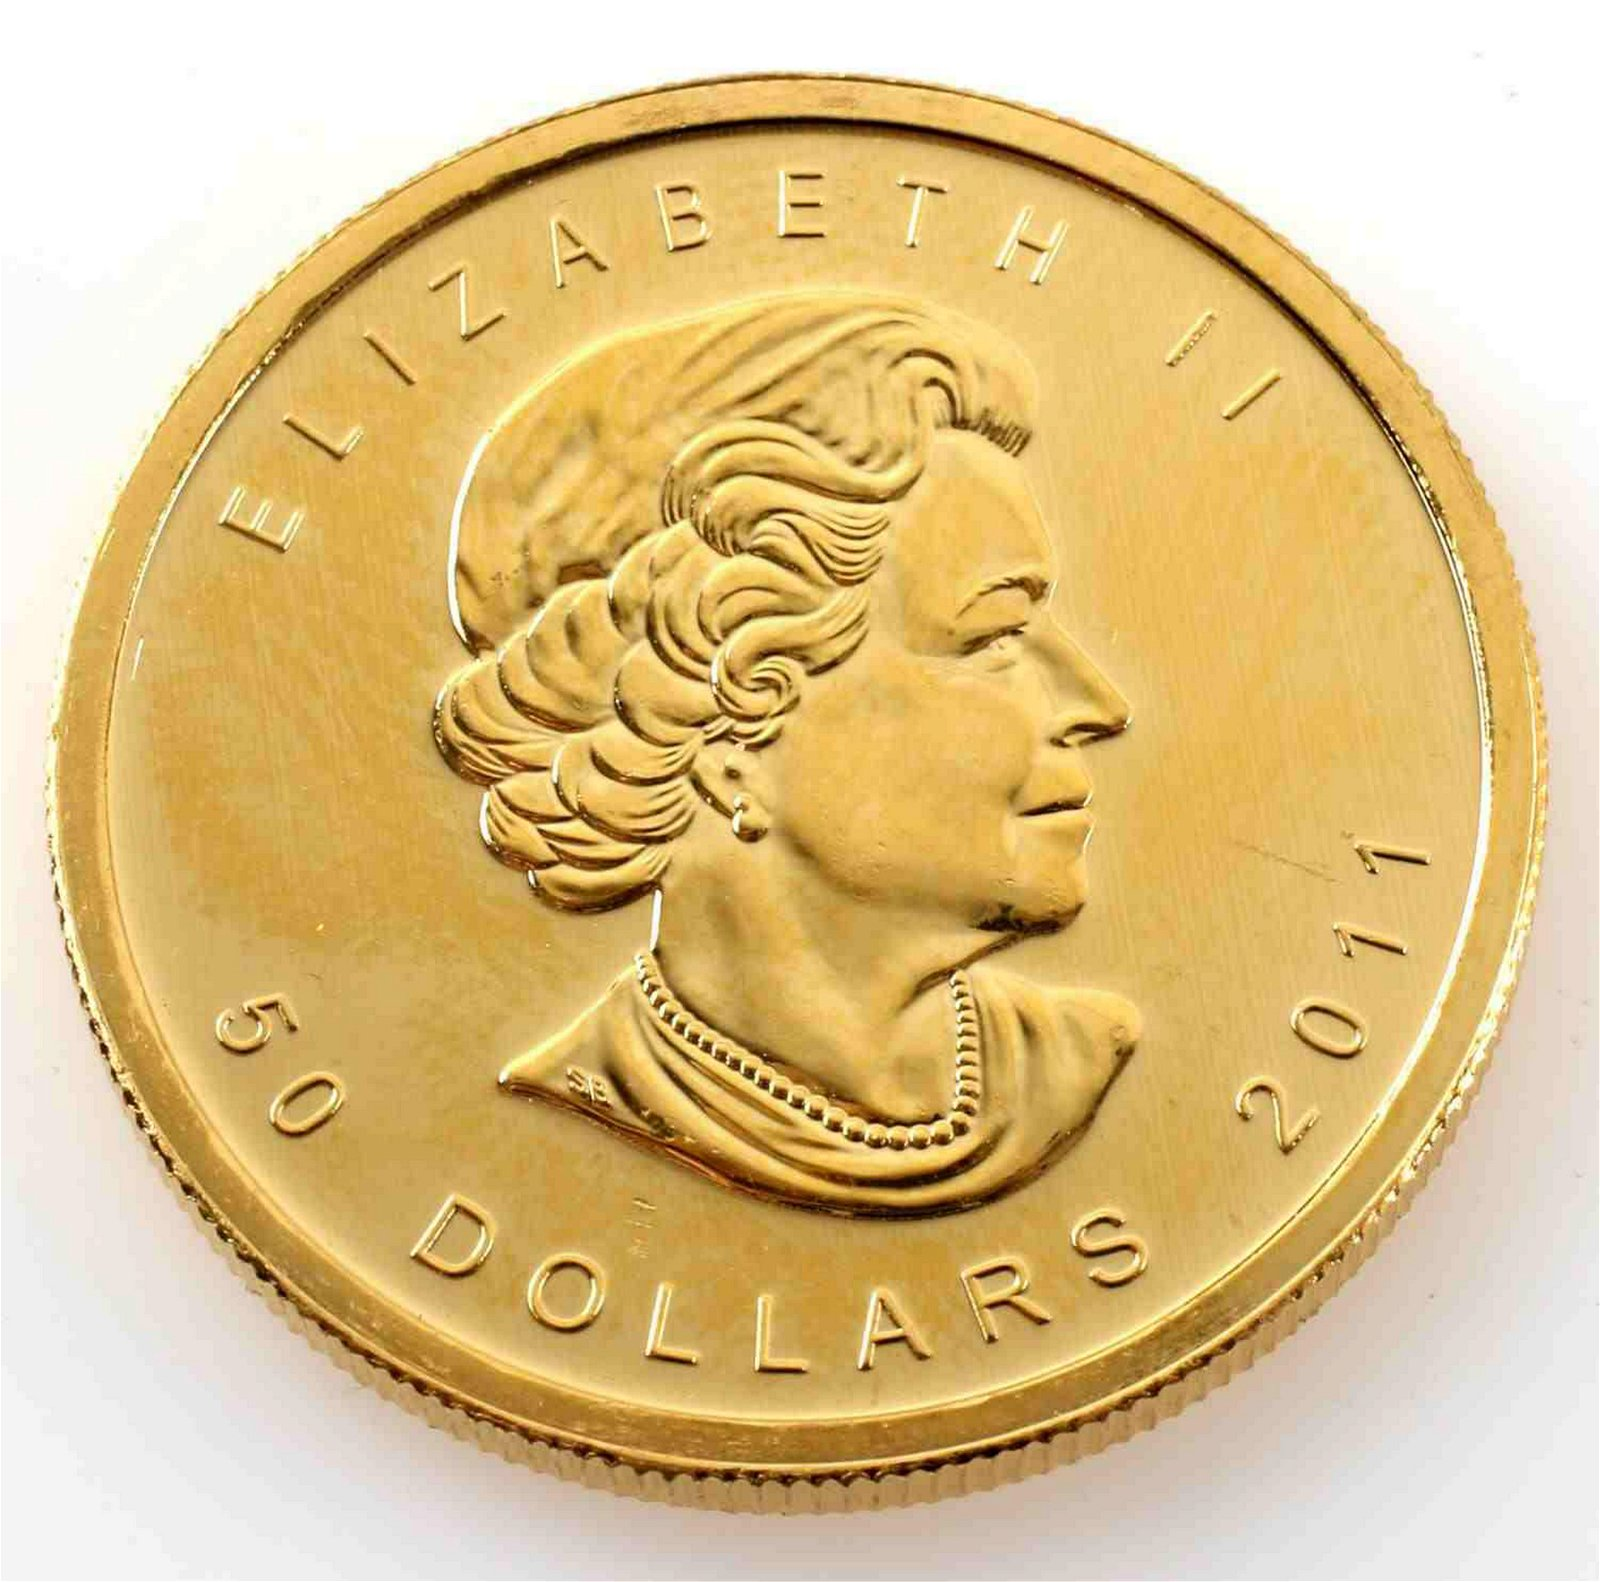 2011 GOLD CANADA MAPLE LEAF 1 OZT .999 FINE